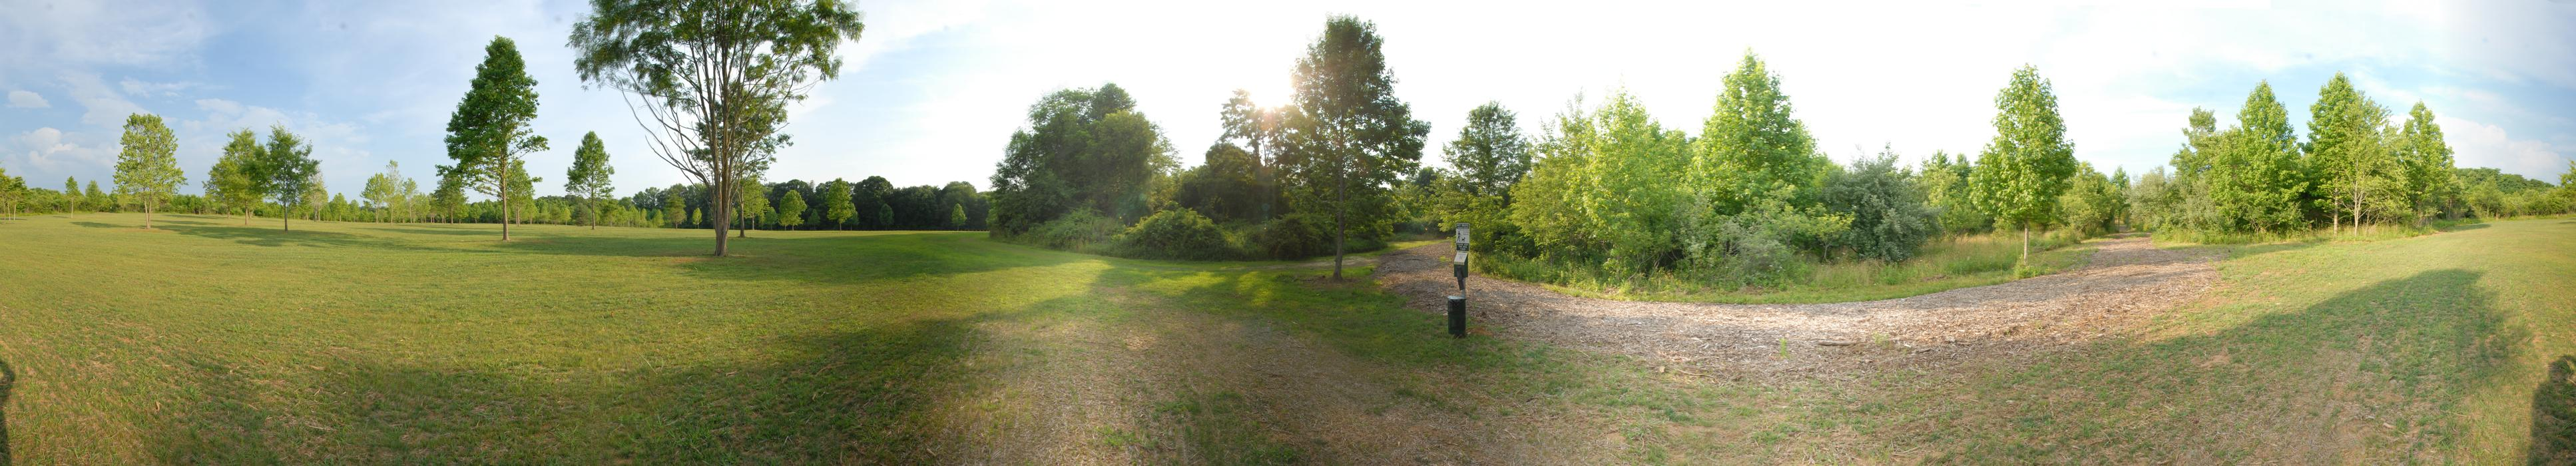 panoramic, field, grass, trees, path